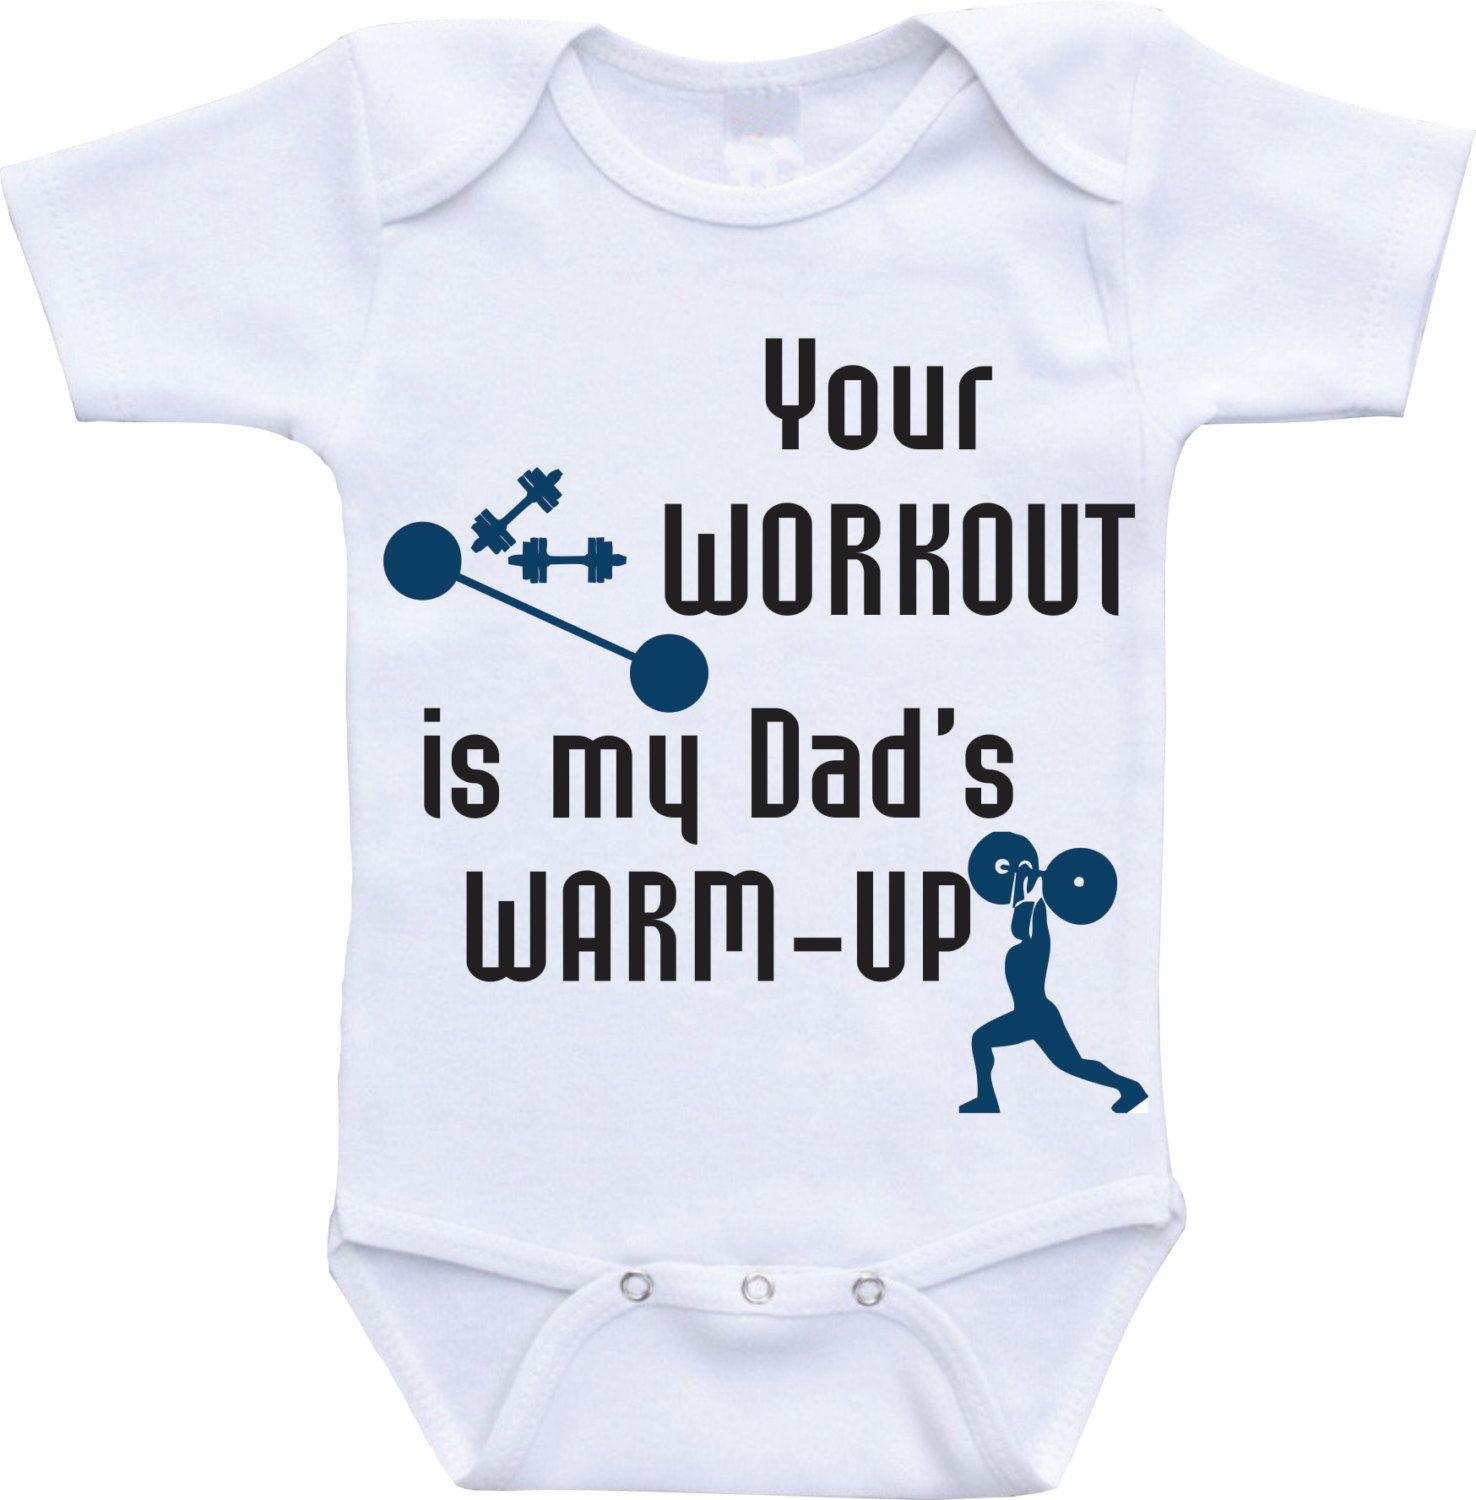 Workout Baby Clothes Your Workout is my Dad s Warm up Workout